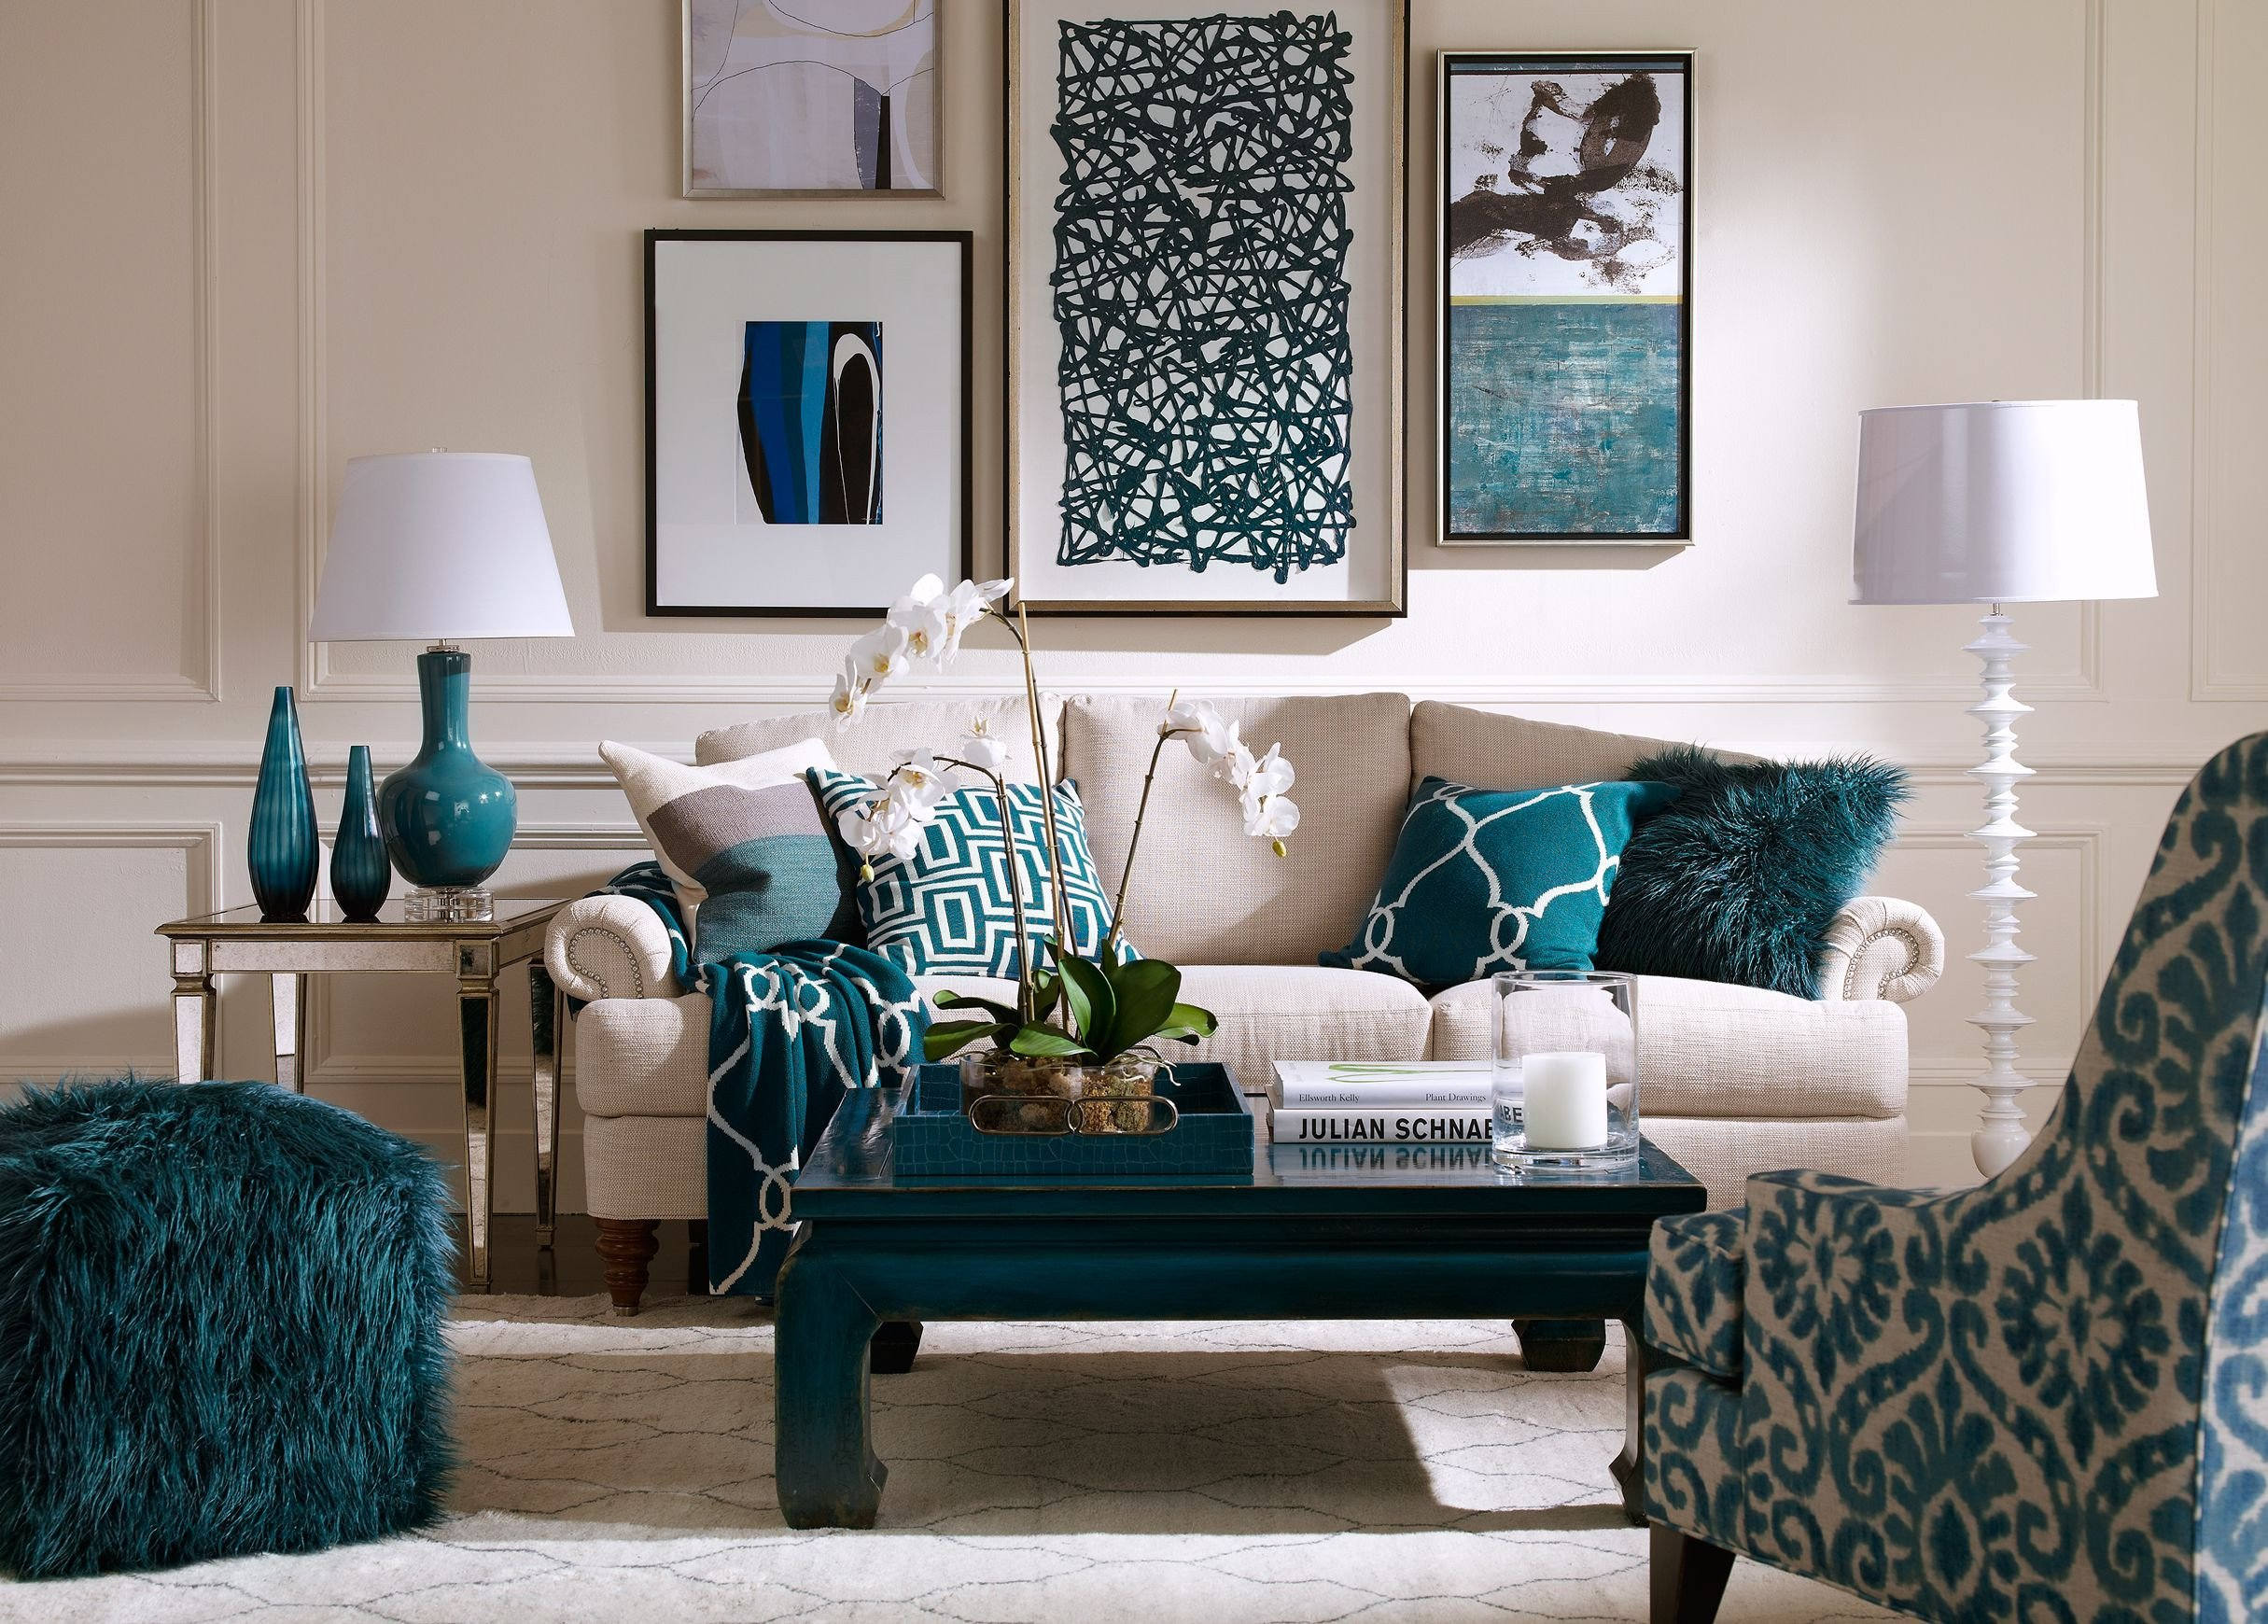 Living Room Ideas Teal Turquoise Dining Room Ideas Turquoise Rooms Turquoise